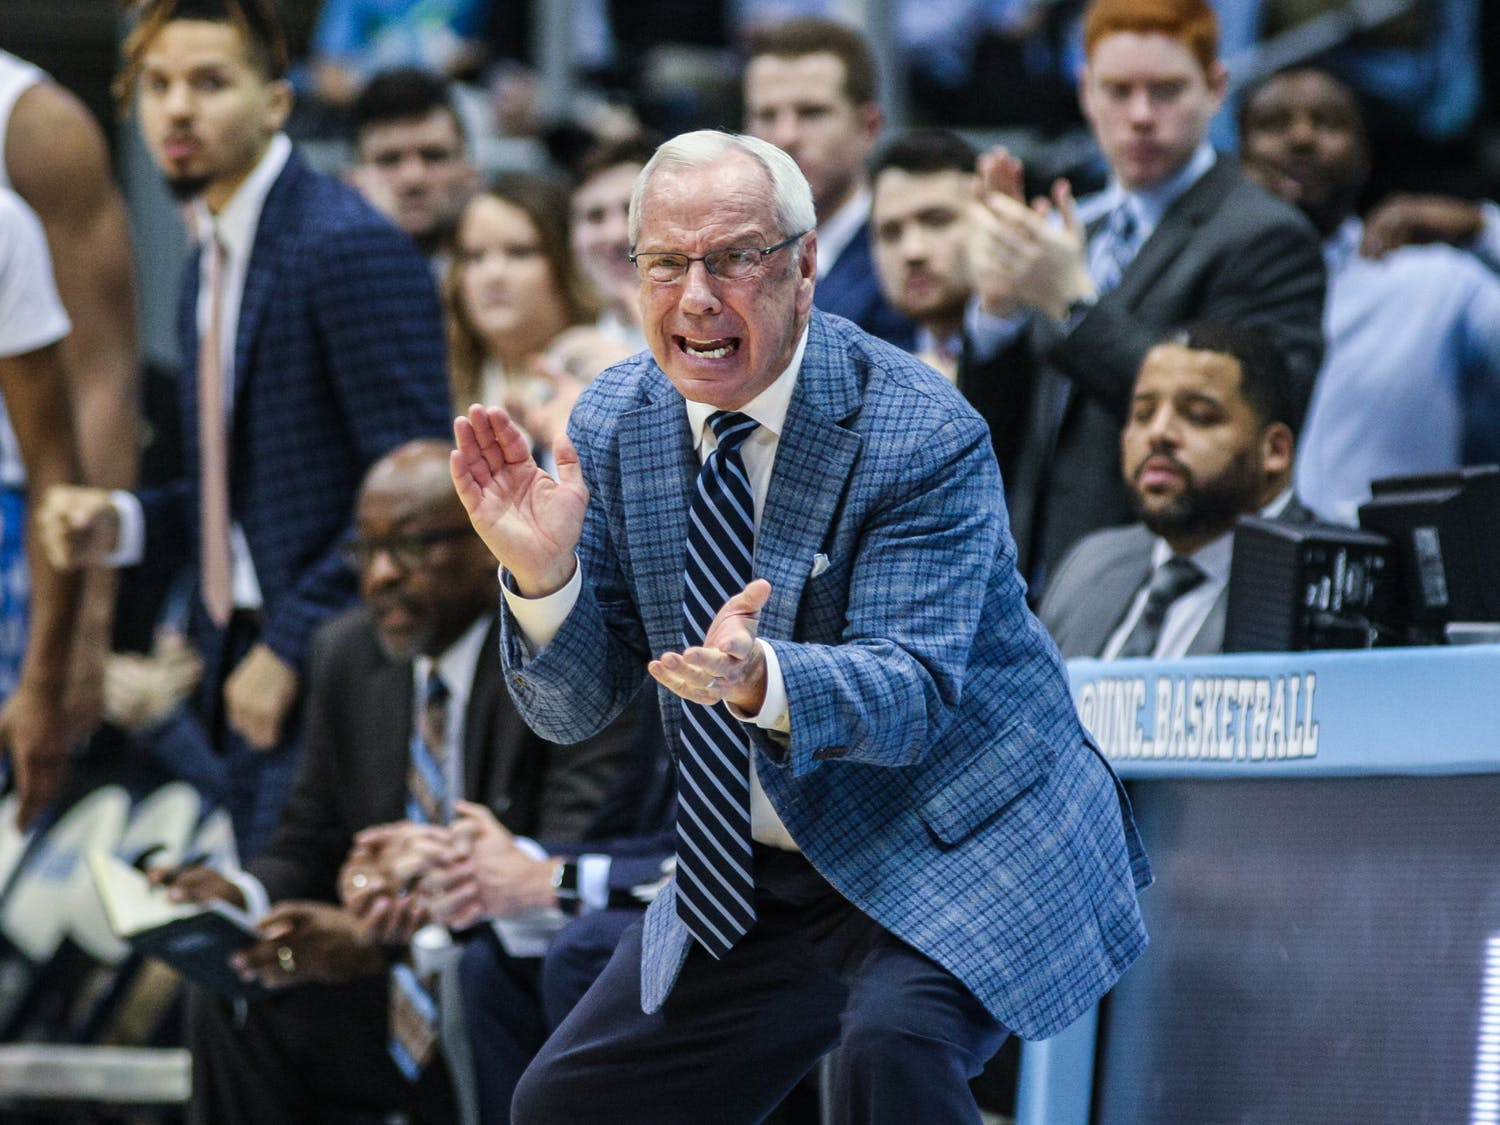 UNC's men's basketball coach Roy Williams cheers from the sidelines during a game against Clemson at the Smith Center on Saturday, Jan. 11, 2020. Clemson defeated UNC for the first time in Chapel Hill 79-76.